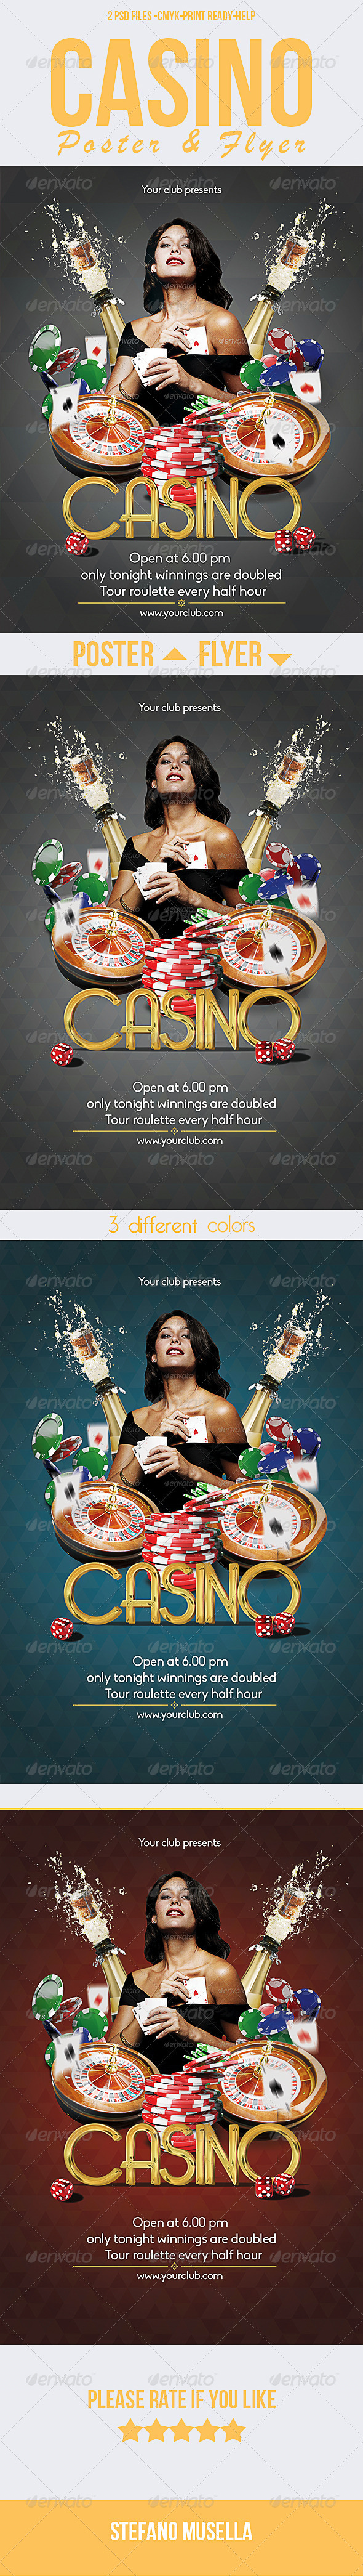 GraphicRiver Casino Poster and Flyer 7160279